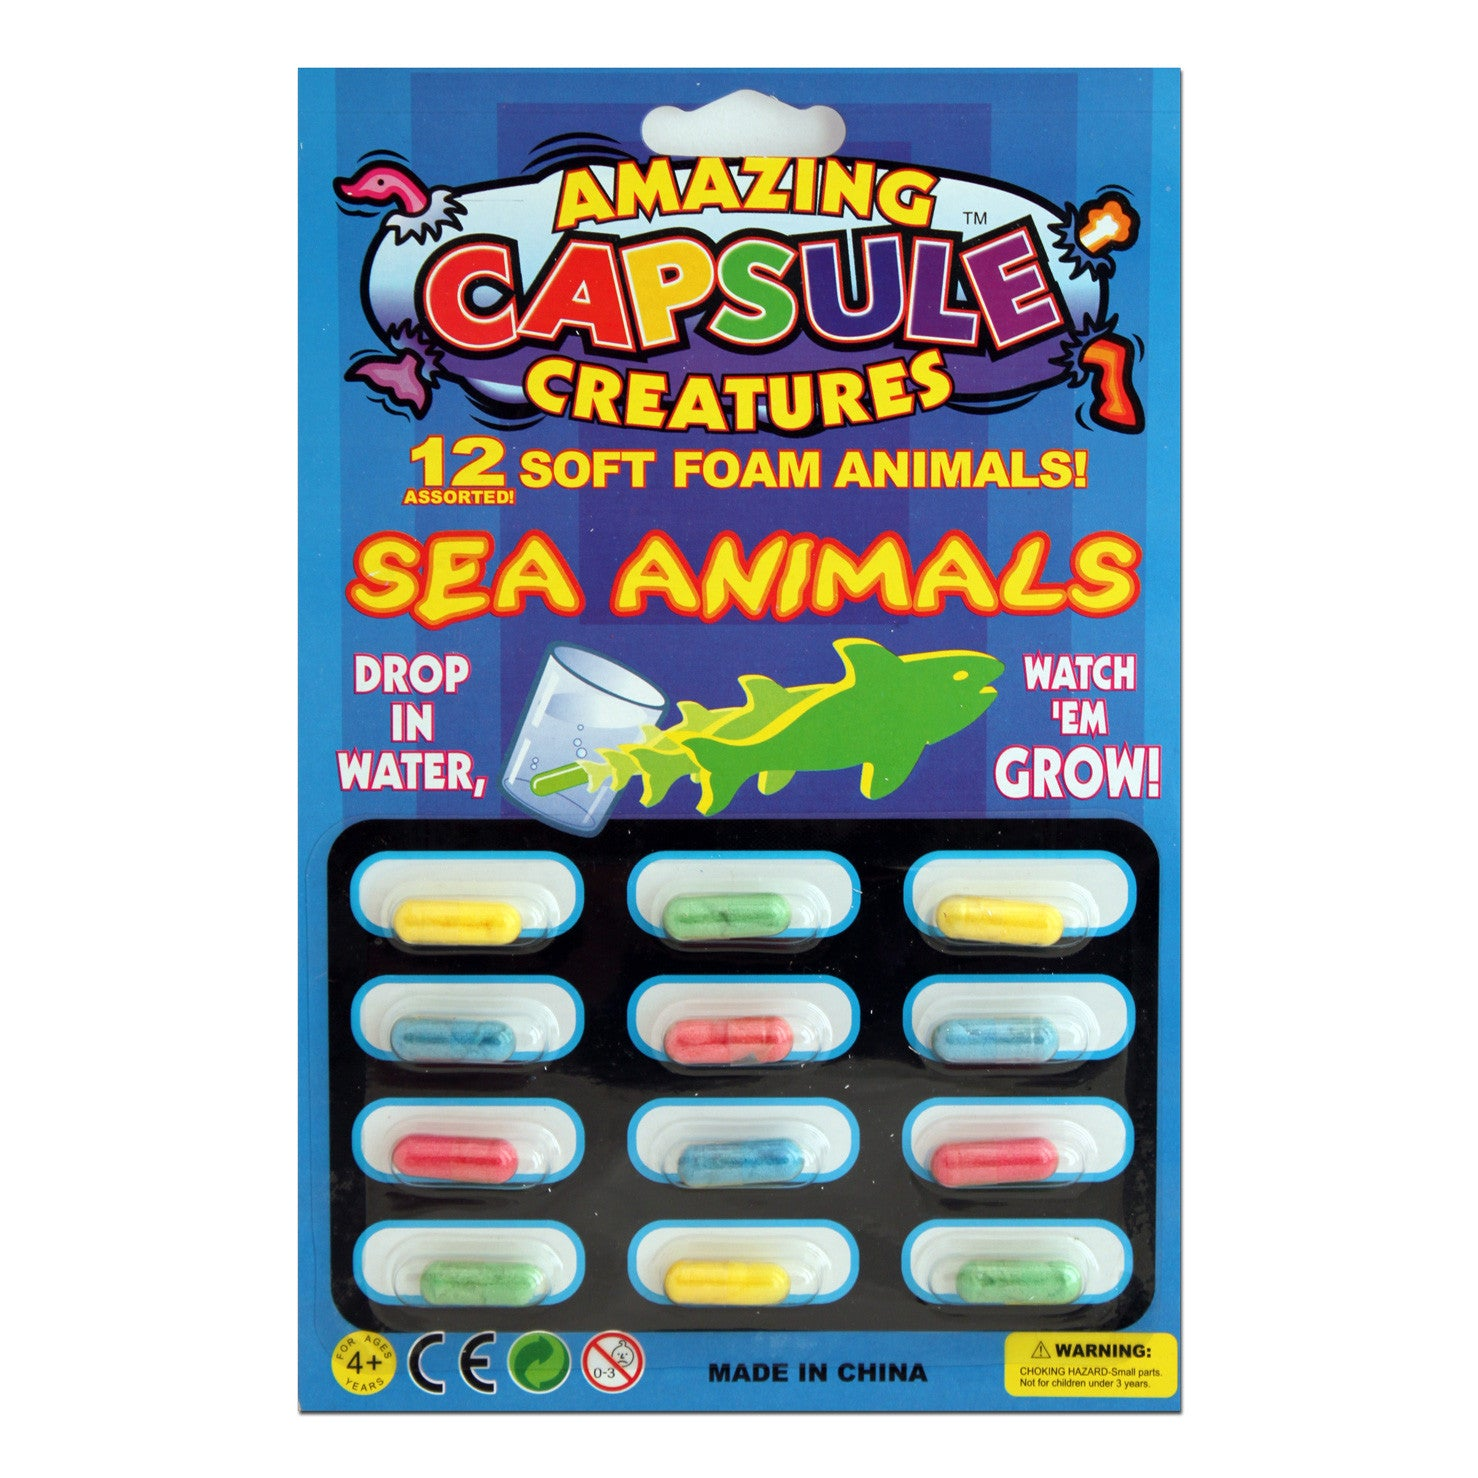 shop for animal toys at crazy cool 3 4 years 5 6 years ages 1